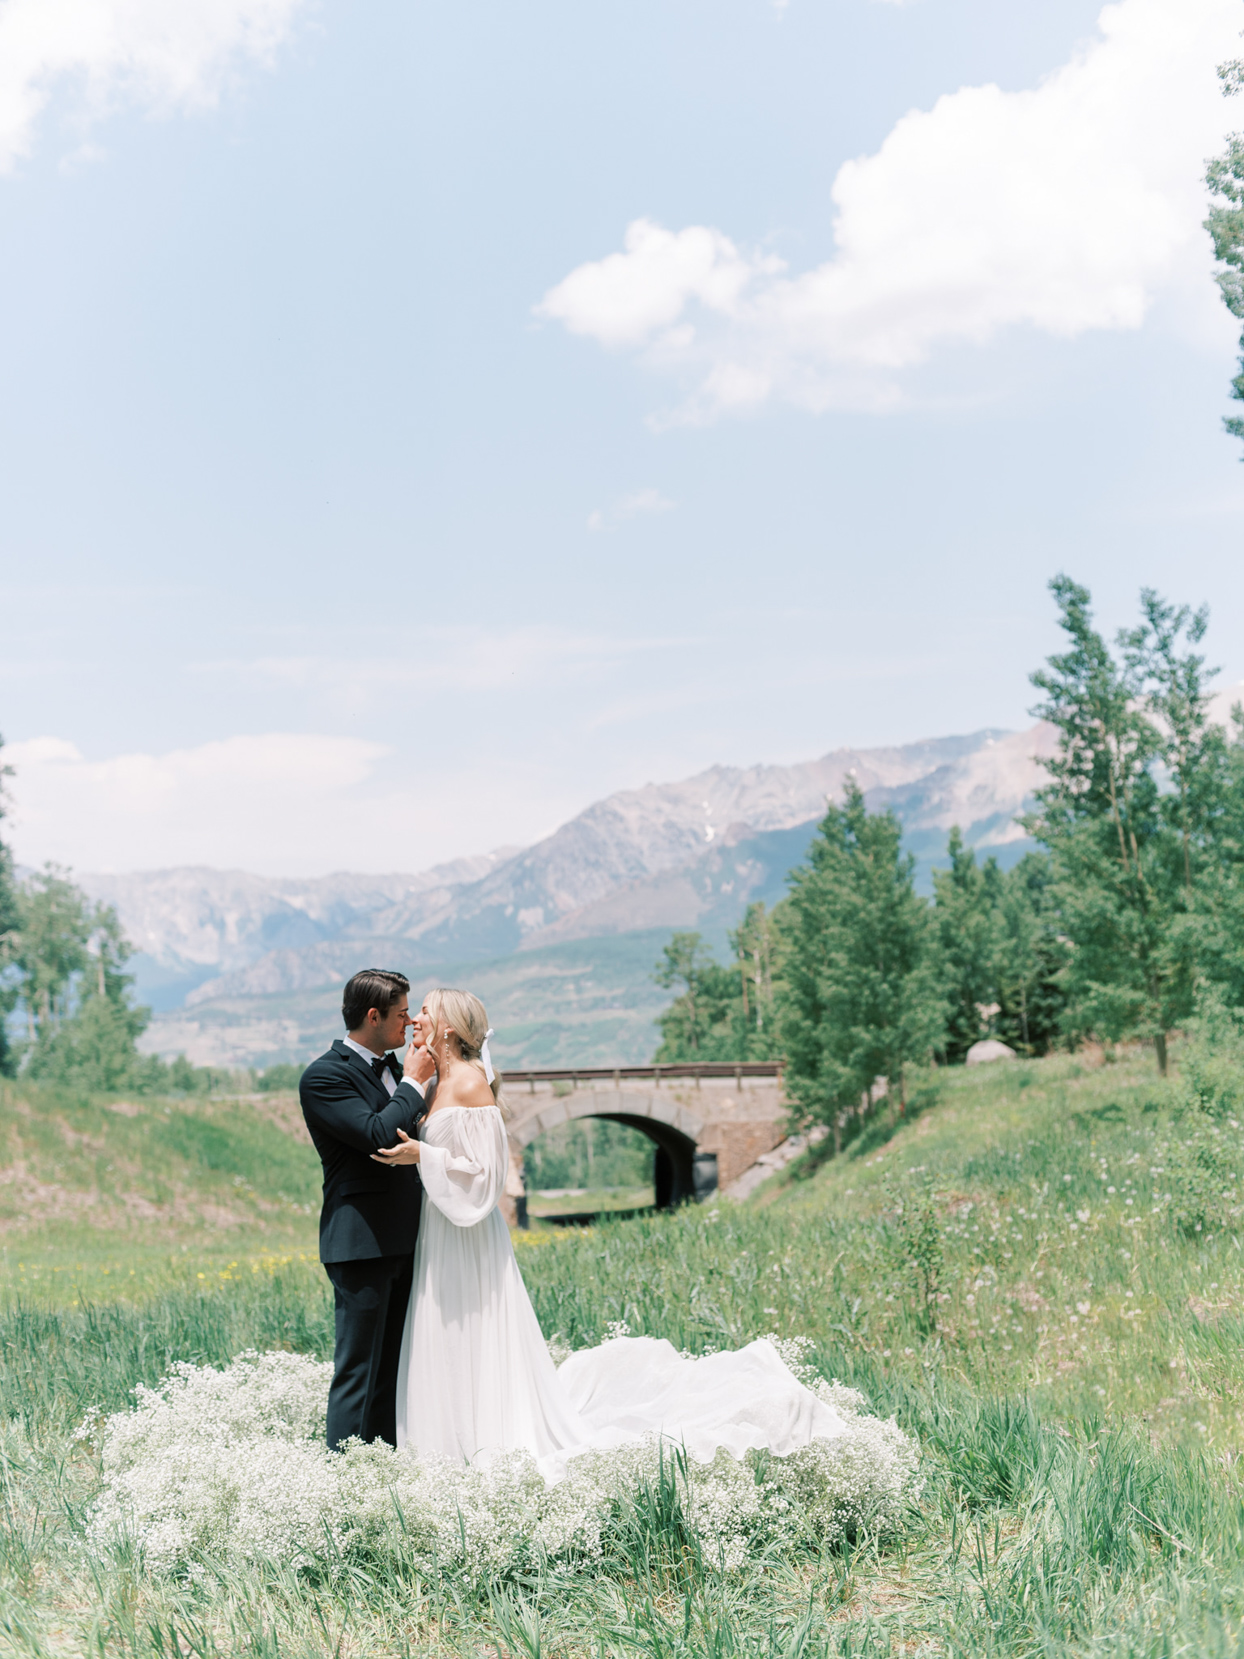 bride and groom near bridge and mountains